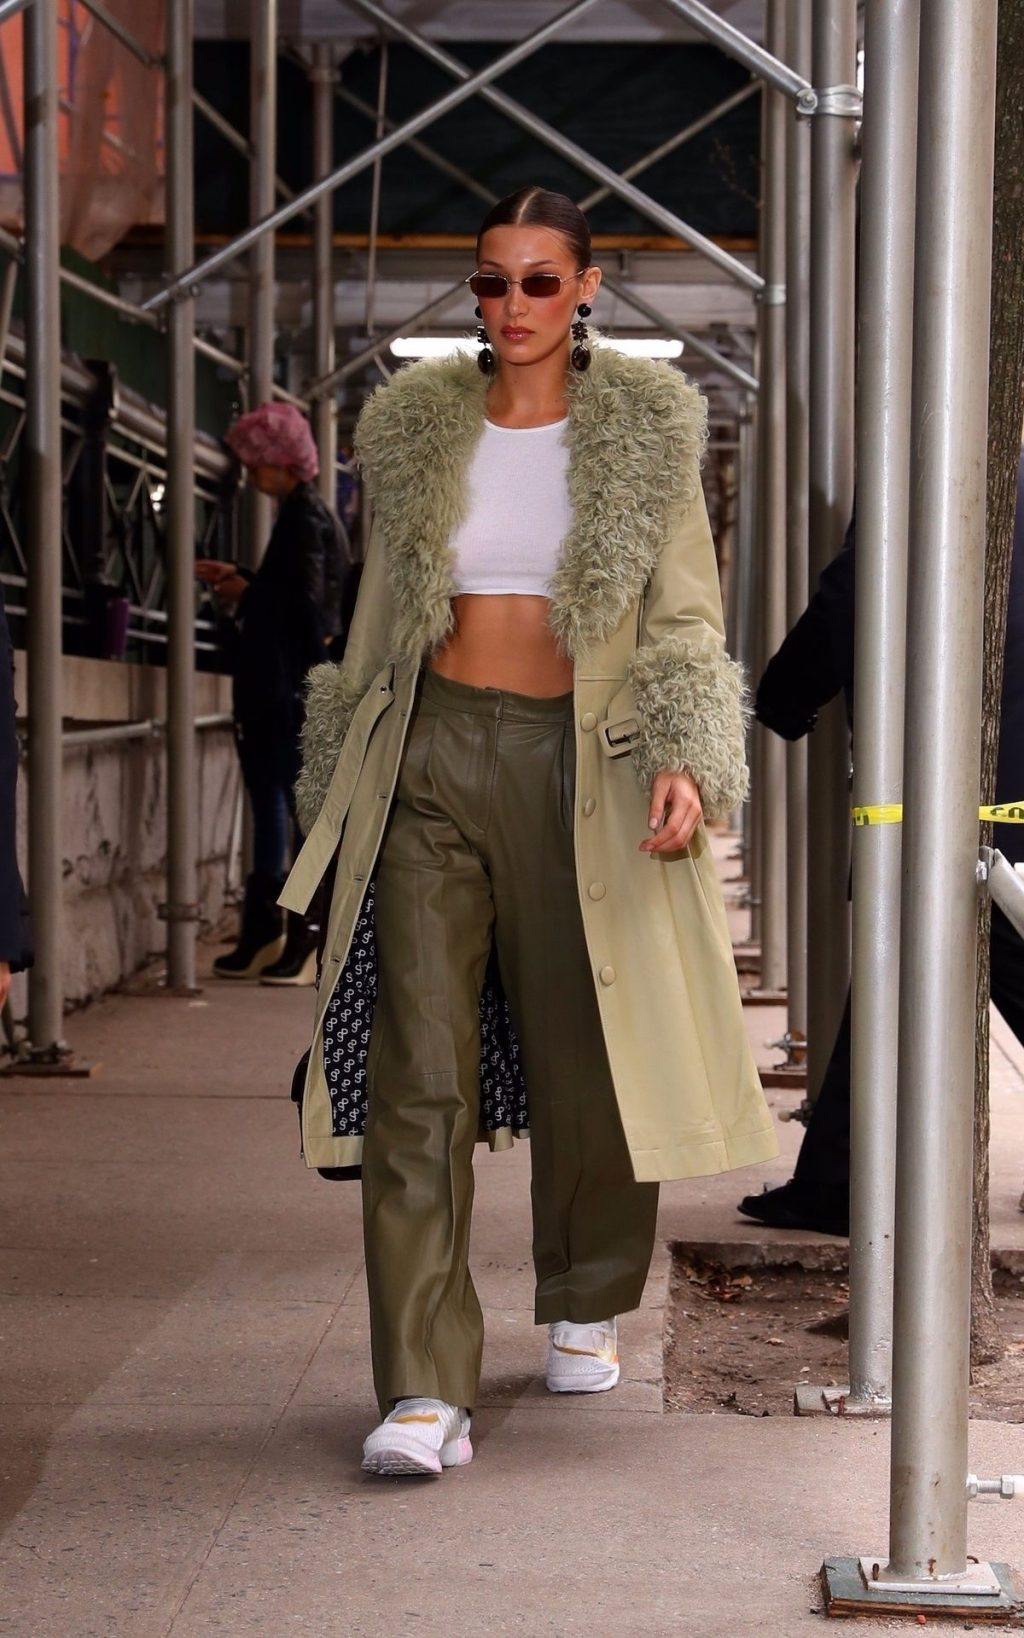 Bella Hadid See through The Fappening Blog 26 1024x1638 - Braless Bella Hadid Arrives at the Park Avenue Armory for the Marc Jacobs Fashion Show (59 Photos)